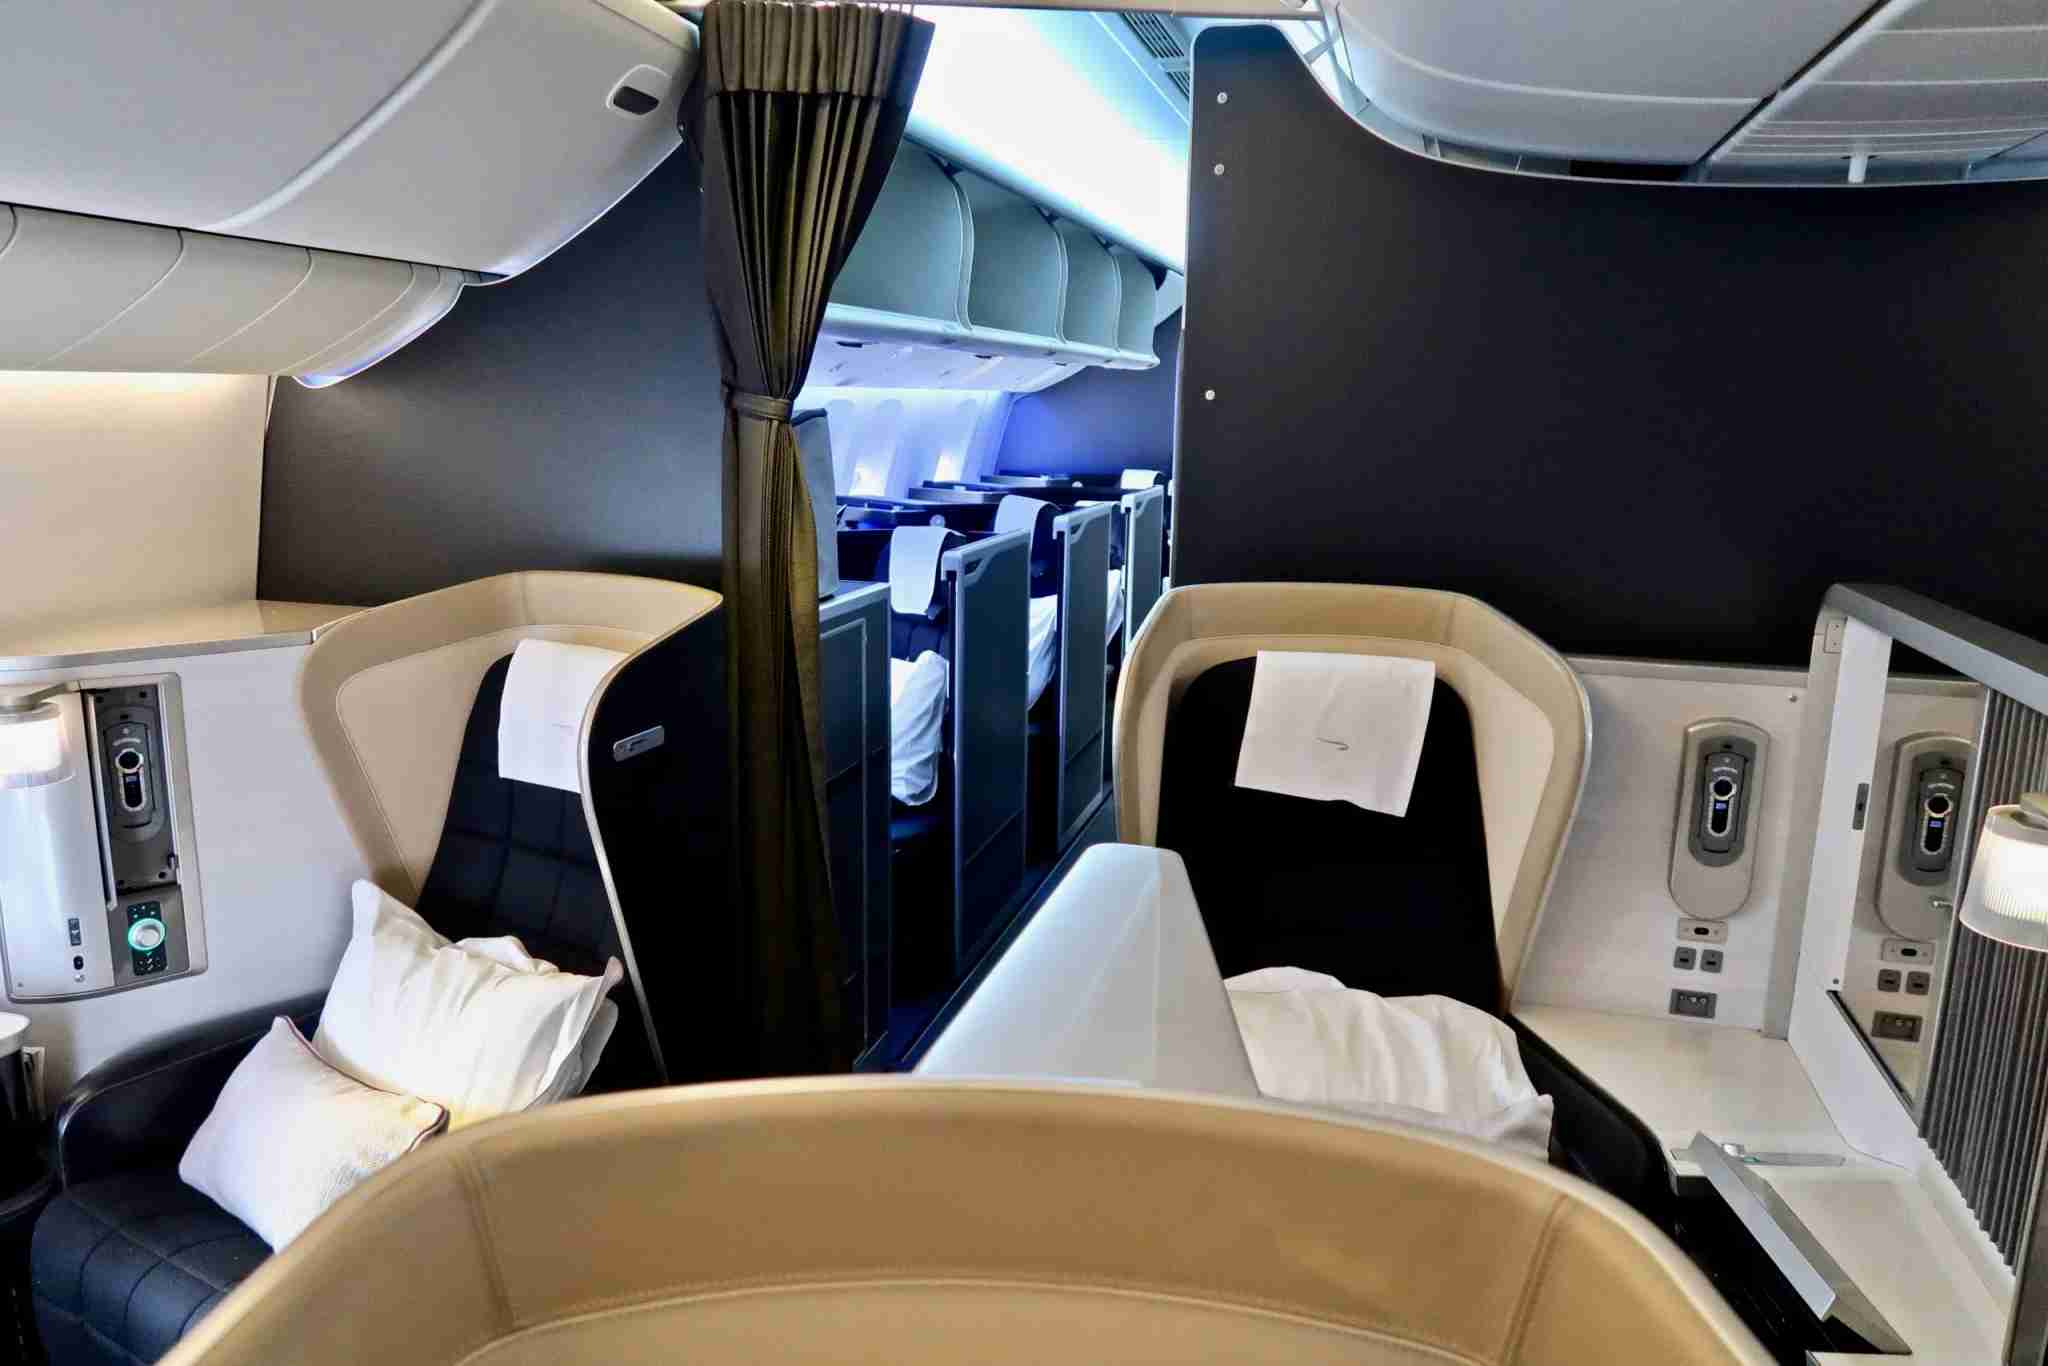 Row 2 of the BA refurbished B777-200 with Club World Suites behind the dividing wall and curtain. Image by Christian Kramer / The Points Guy